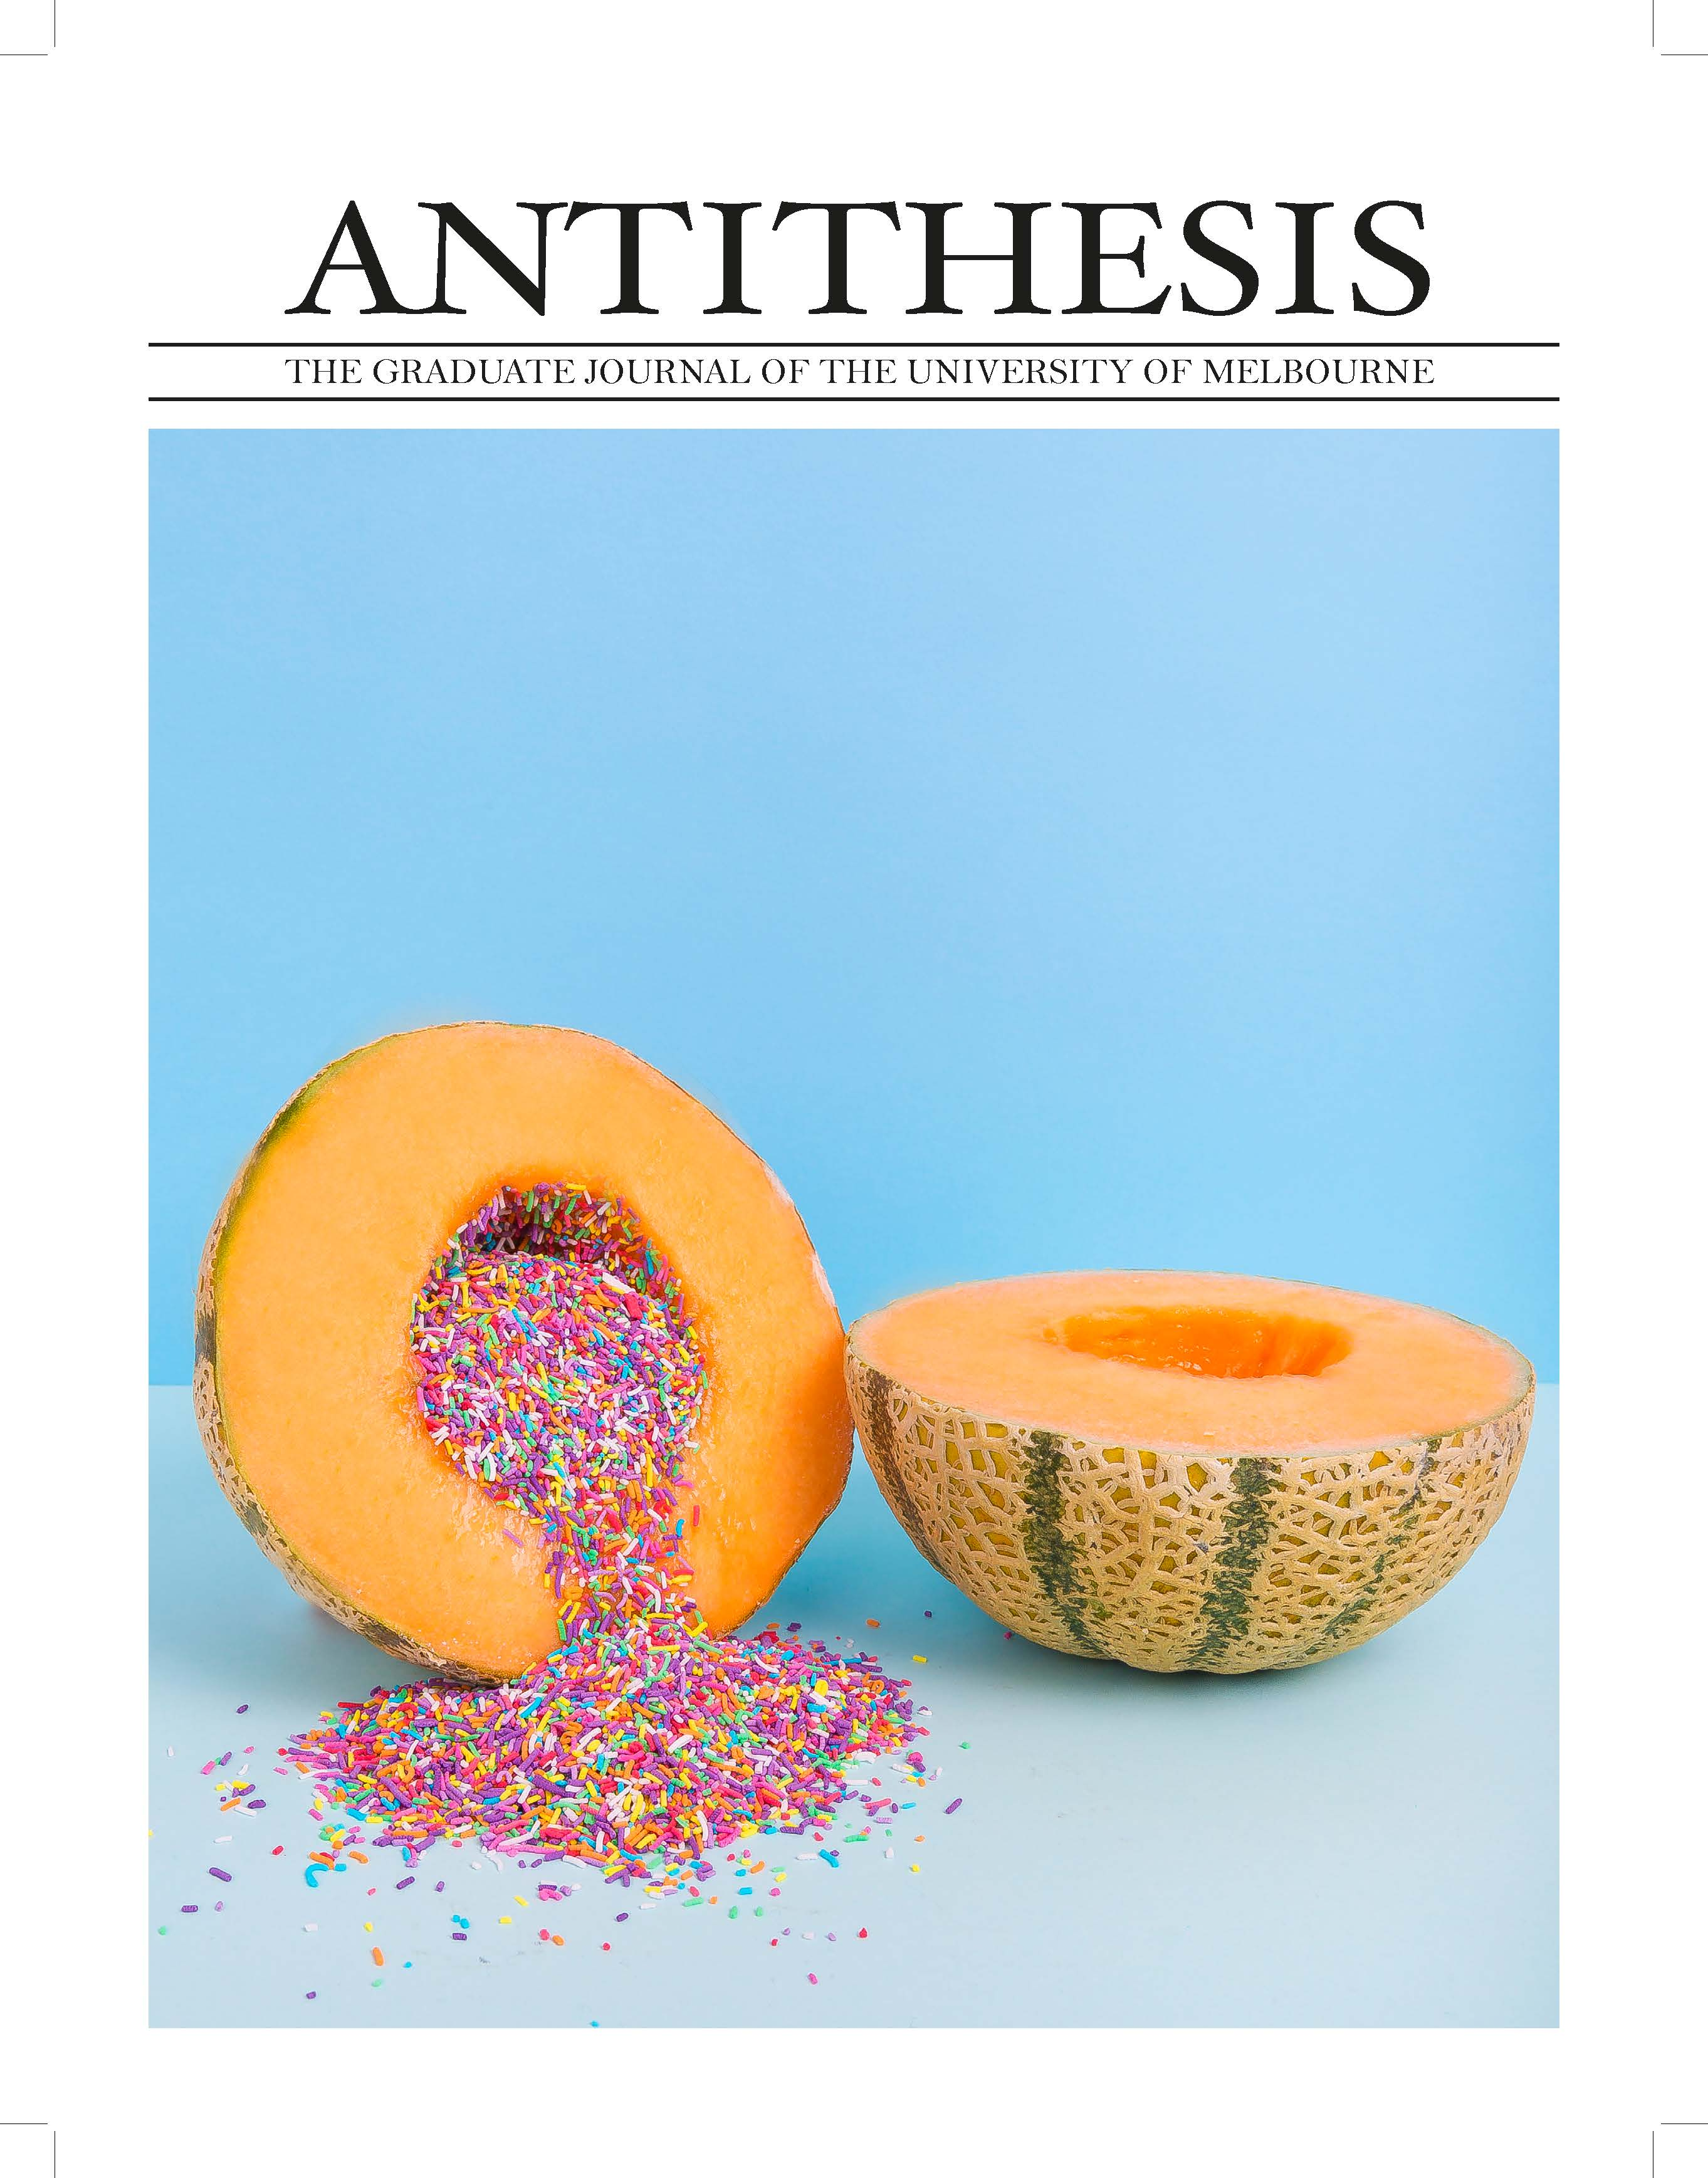 antithesis journal The origin of schizophrenia: genetic thesis, epigenetic antithesis, and   antithesis: schizophrenia = epimutations + stochasticity resolving synthesis  references  endorsement by the journal, association, or publisher of the  quality or value.